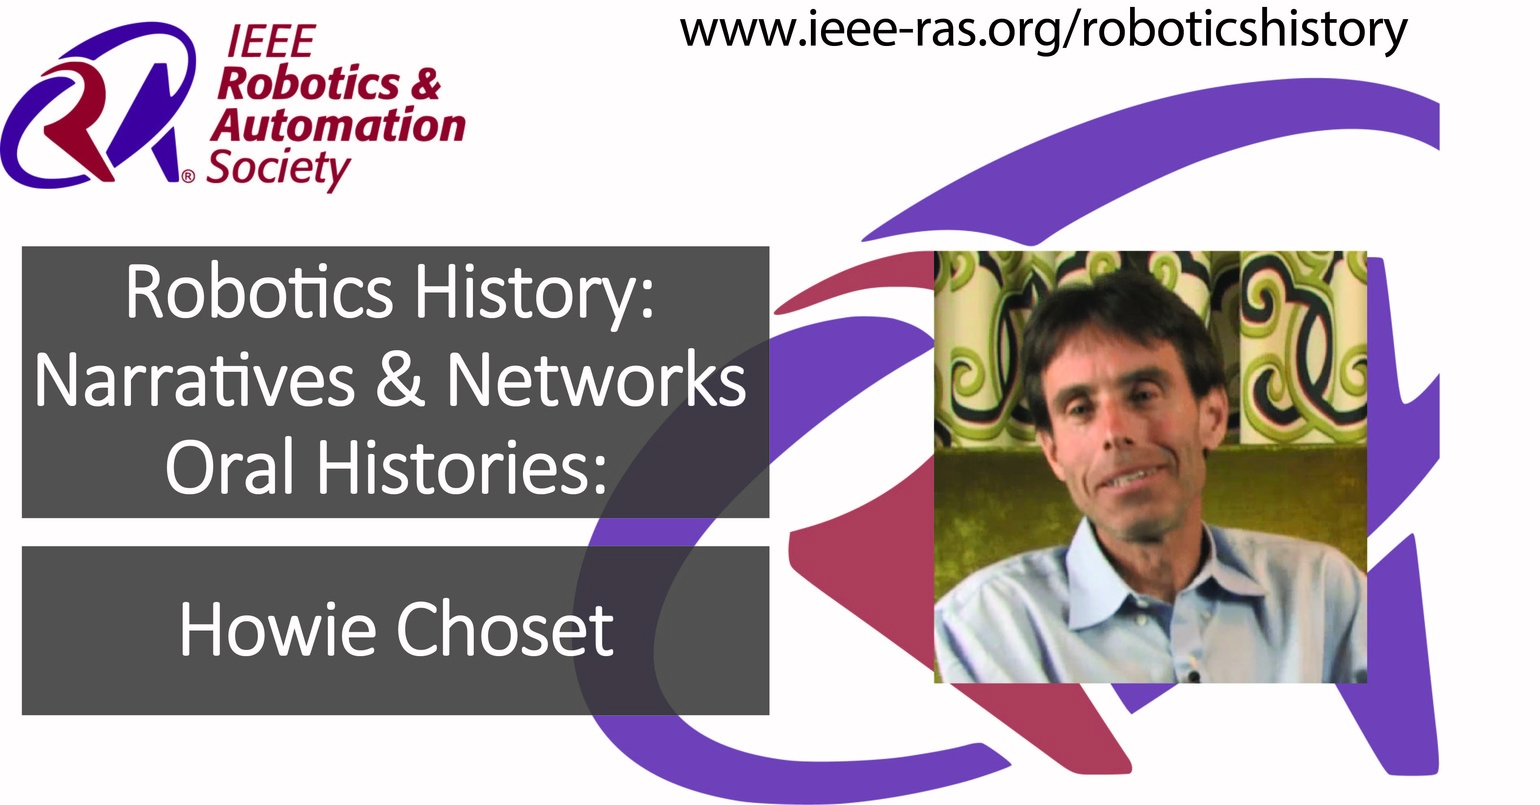 Robotics History: Narratives and Networks Oral Histories: Howie Choset